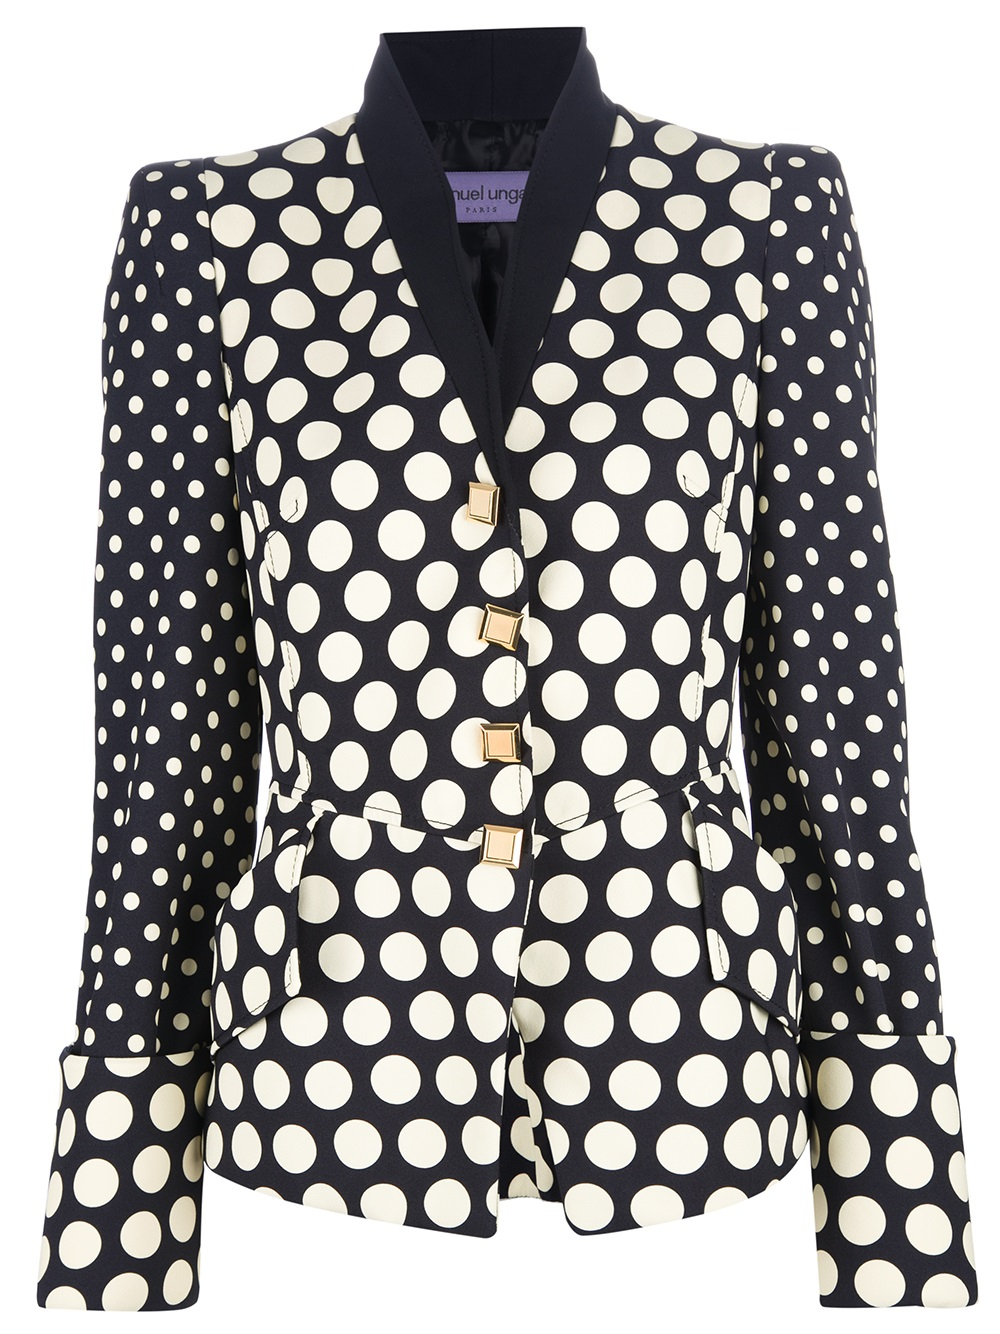 Sep 06, · Mix It With Leather: you can mix it with leather like wearing polka dot top with leather skirt or by wearing a leather jacket with polka dot pants. 4. All Over White: you can wear a white polka dot top with white skirt or pants.